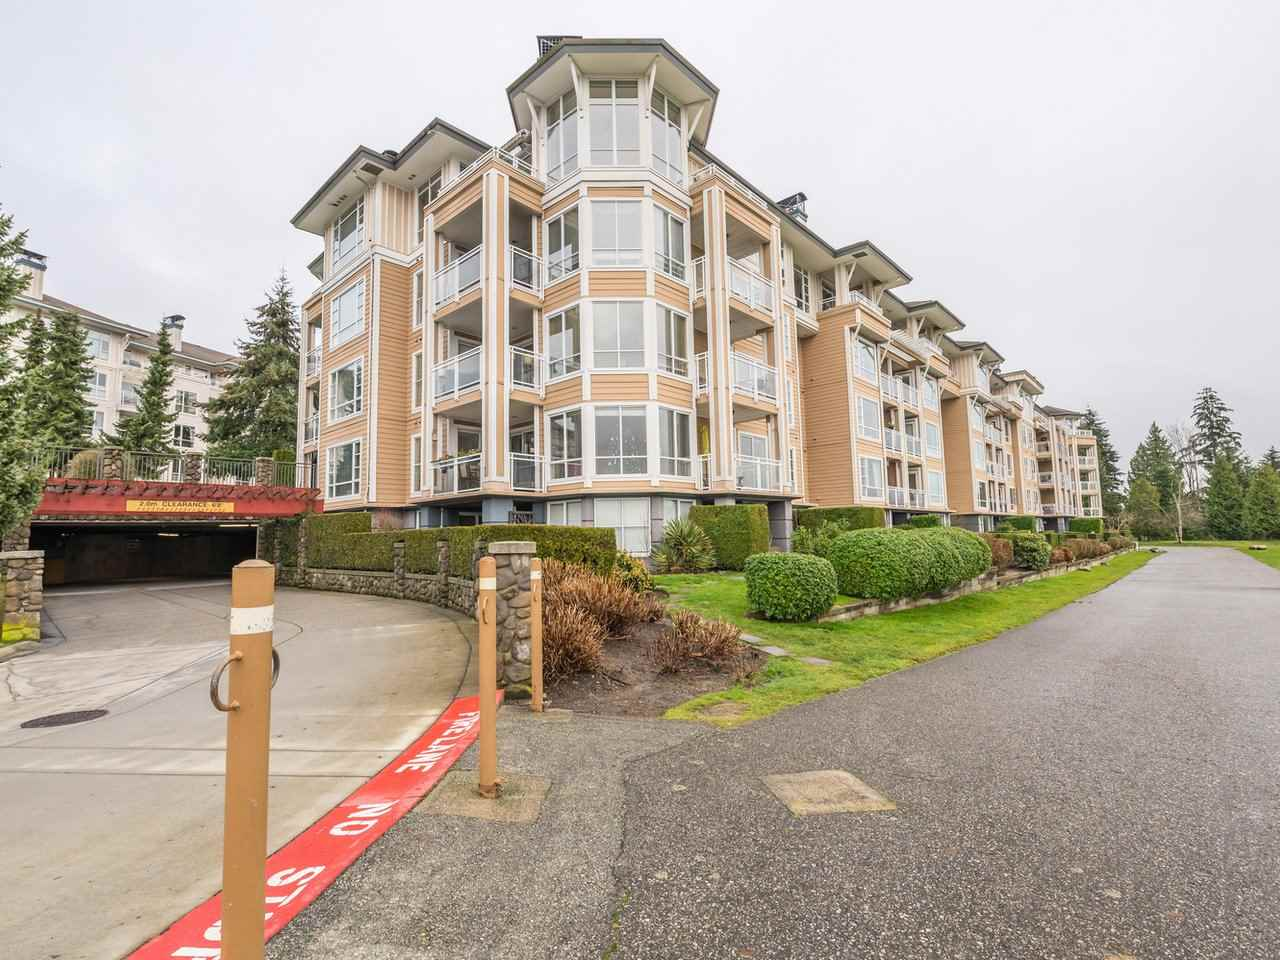 412 3629 DEERCREST DRIVE - Roche Point Apartment/Condo for sale, 1 Bedroom (R2525424) - #34